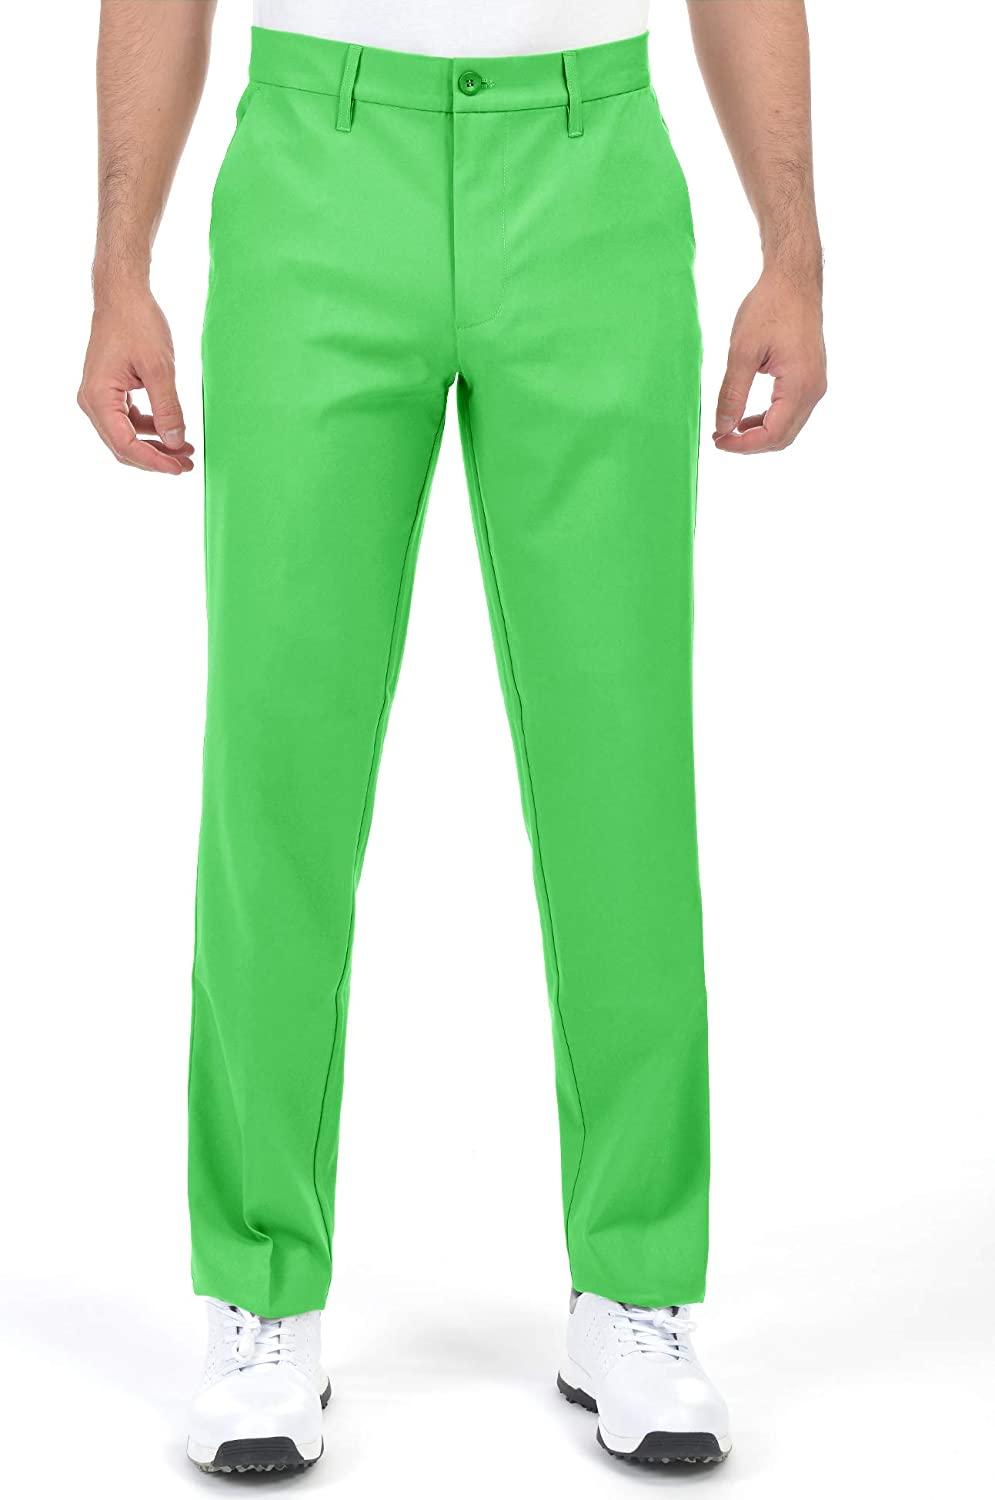 Men's Golf Tapered online shopping Pants New sales Plaid Stretch Li Khaki Relaxed Tech Fit